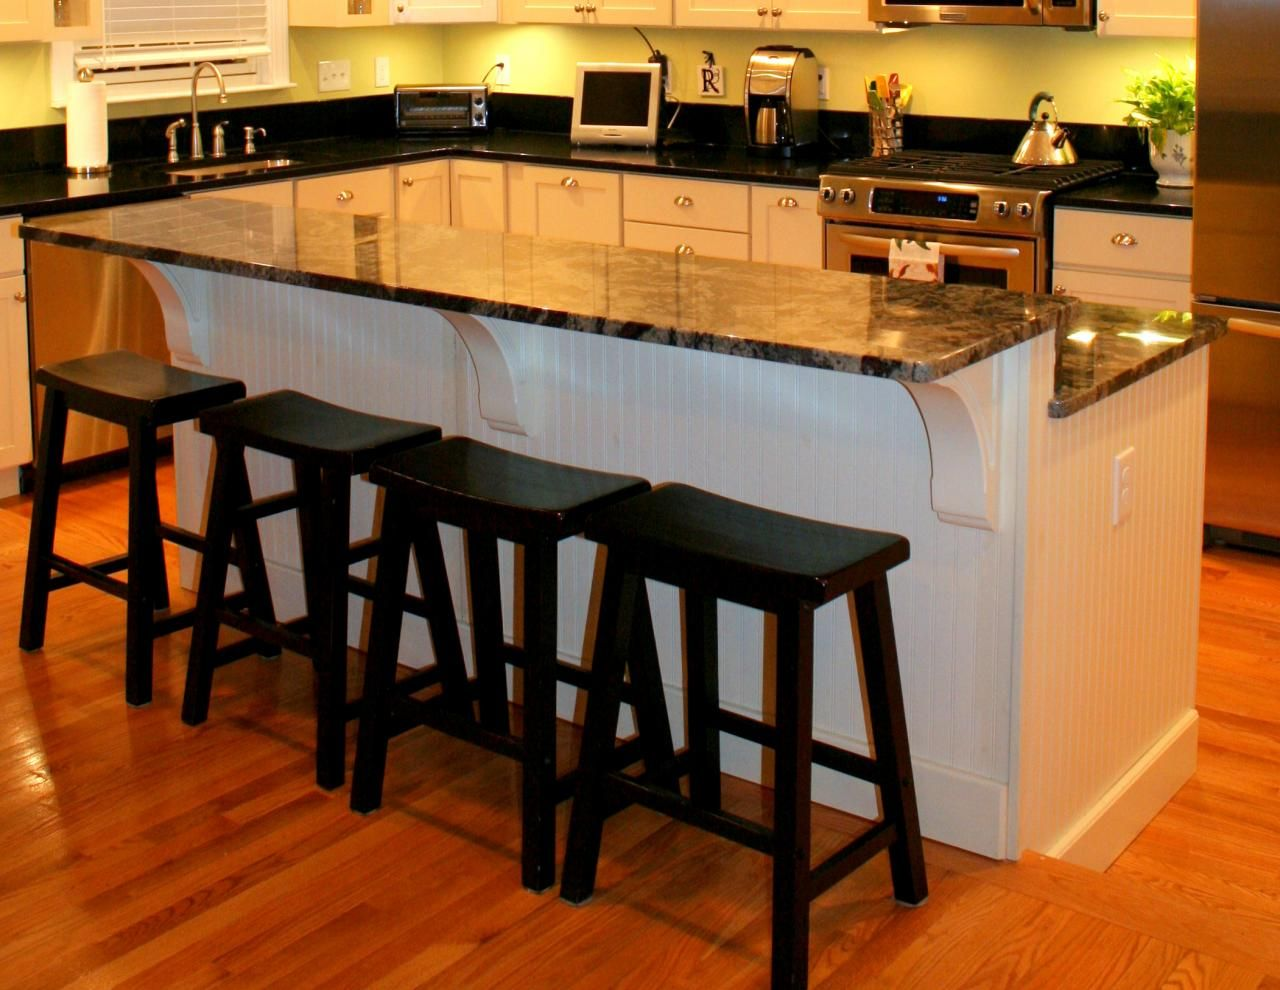 68 Deluxe Custom Kitchen Island Ideas Jaw Dropping Designs Kitchen Island With Sink Kitchen Island Bar Kitchen Layouts With Island